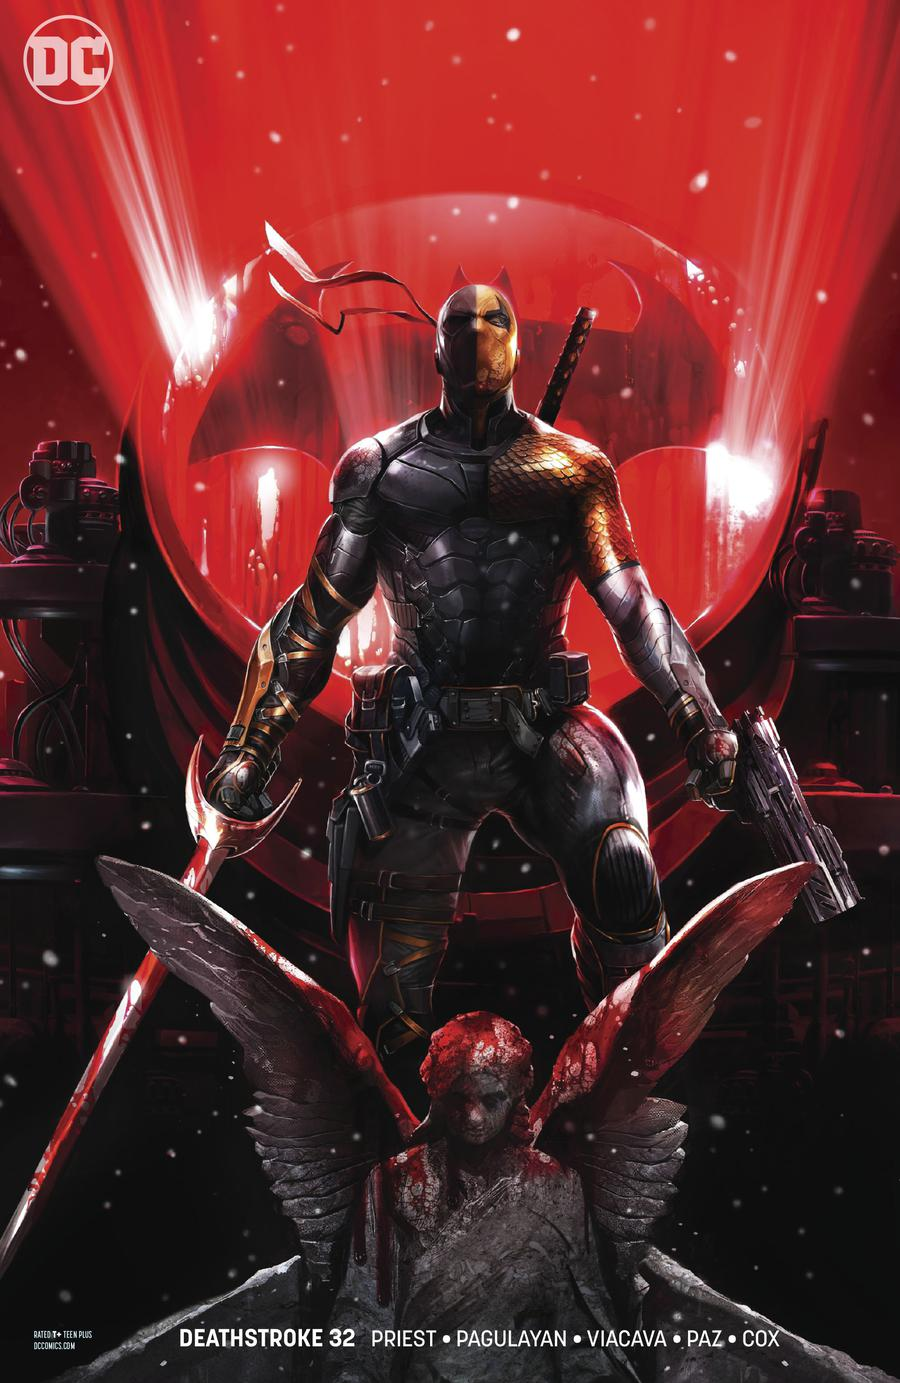 Deathstroke Vol 4 #32 Cover B Variant Francesco Mattina Cover